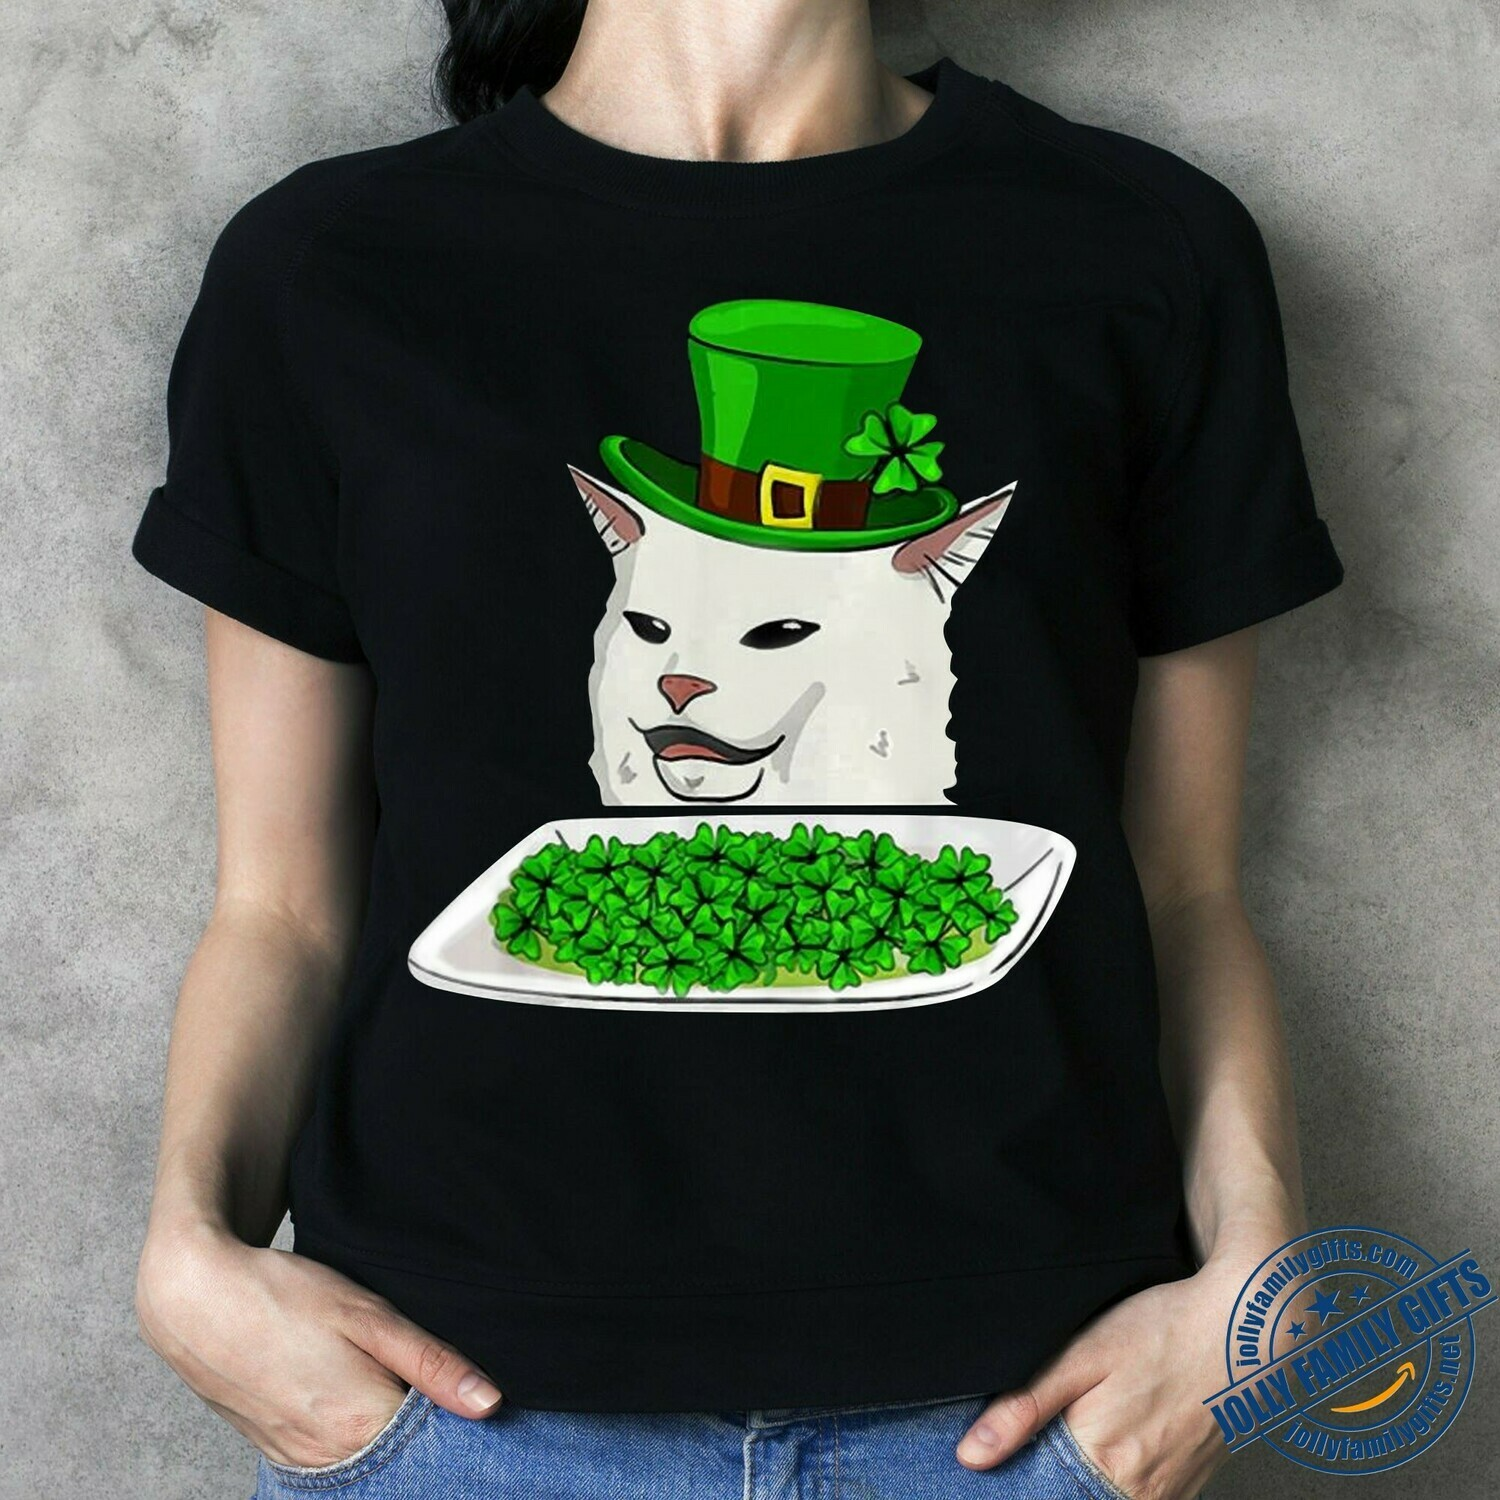 Saint Patricks confused cat meme St Patrick's Day smudge,Cat Hat with Shamrock Four Leaf Clover Gift  T-Shirt Hoodie Sweatshirt Sweater Tee Kids Youth Gifts Jolly Family Gifts